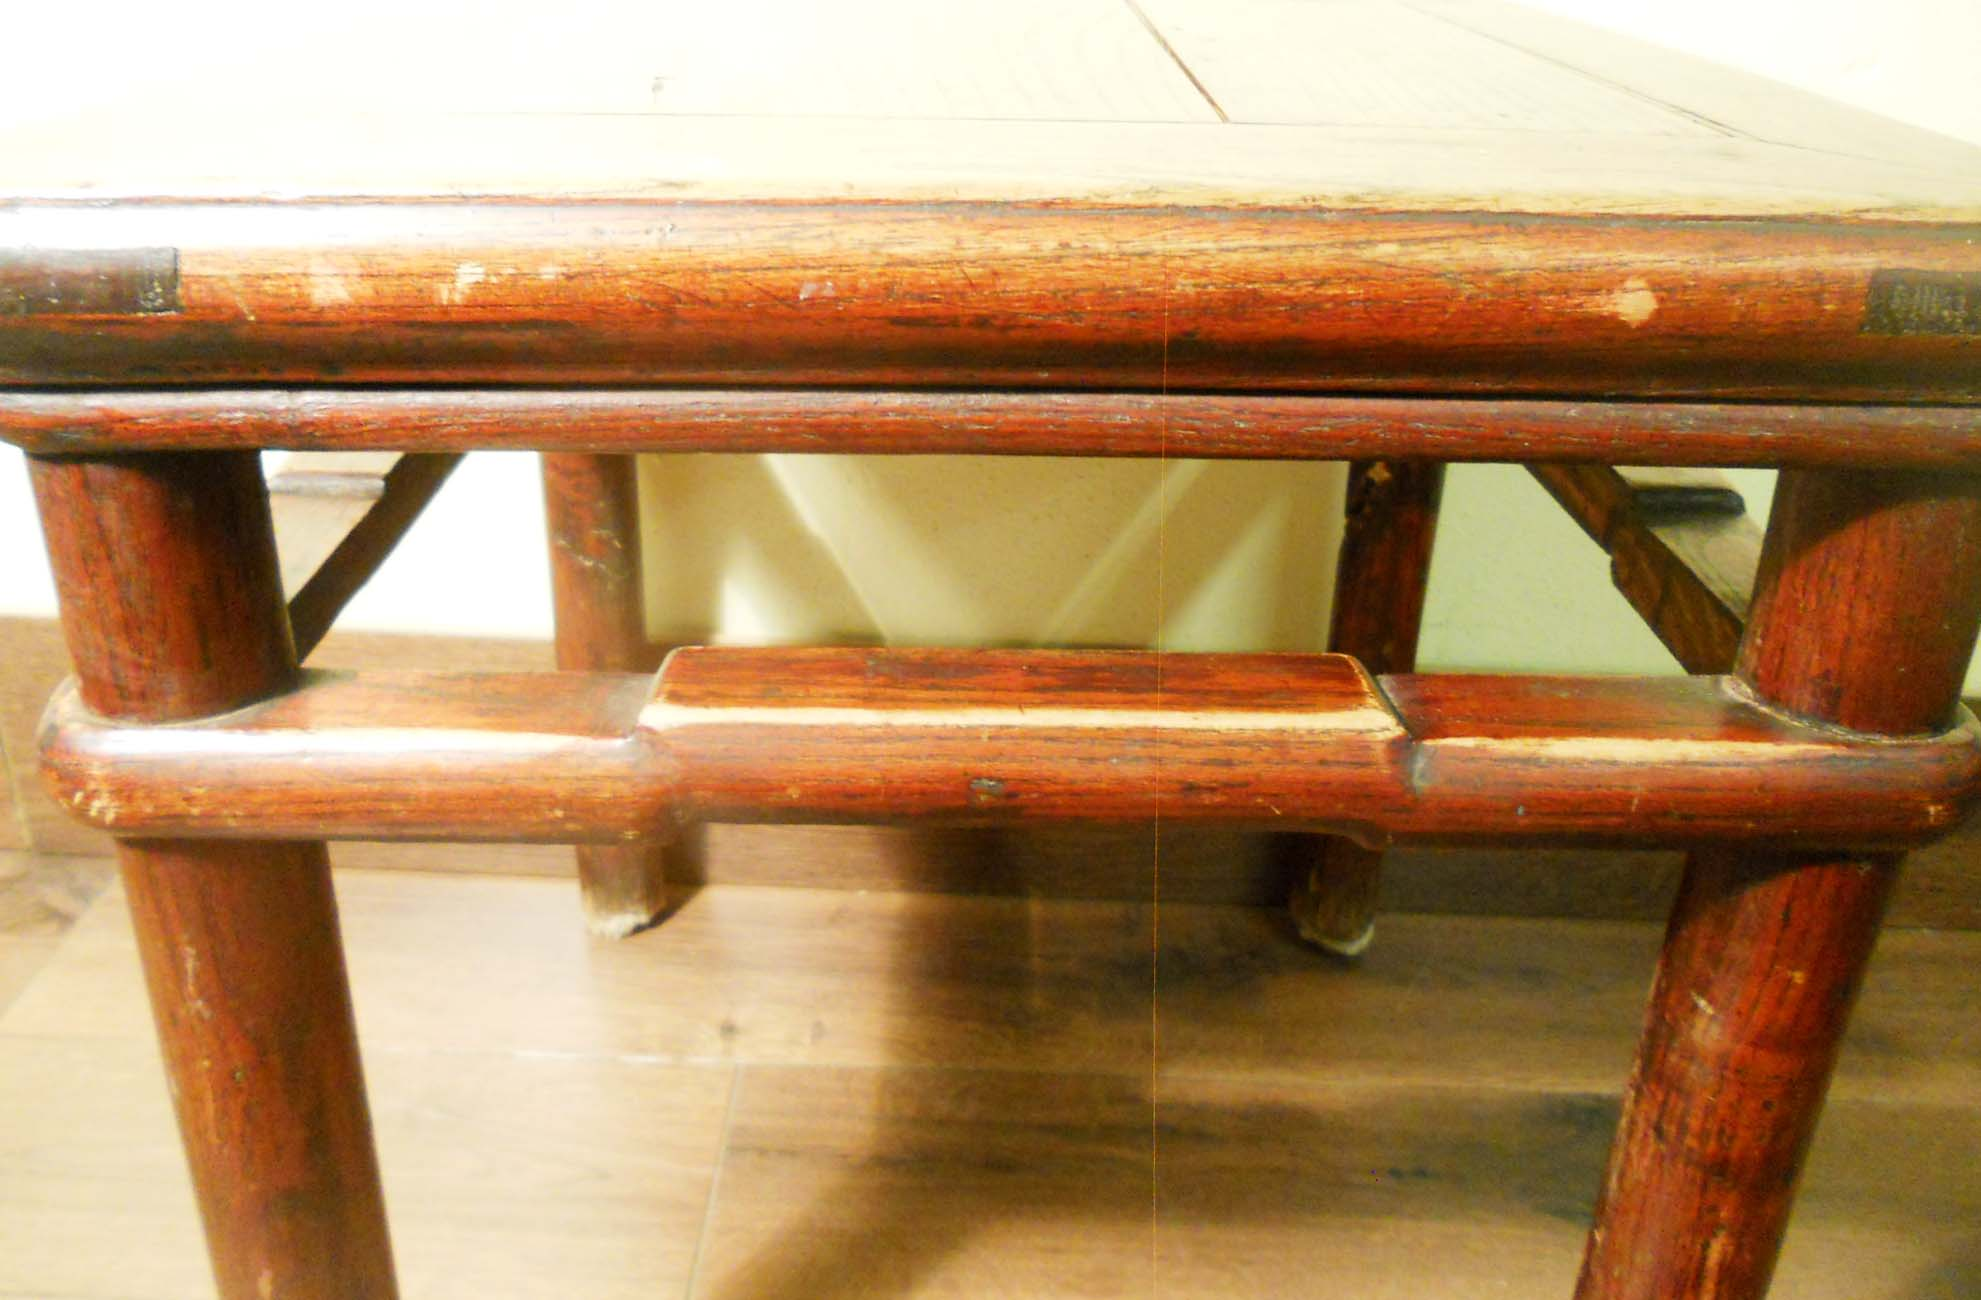 Antique Chinese Ming Meditation Bench 5791 Circa 1800 1849 For Sale Classifieds